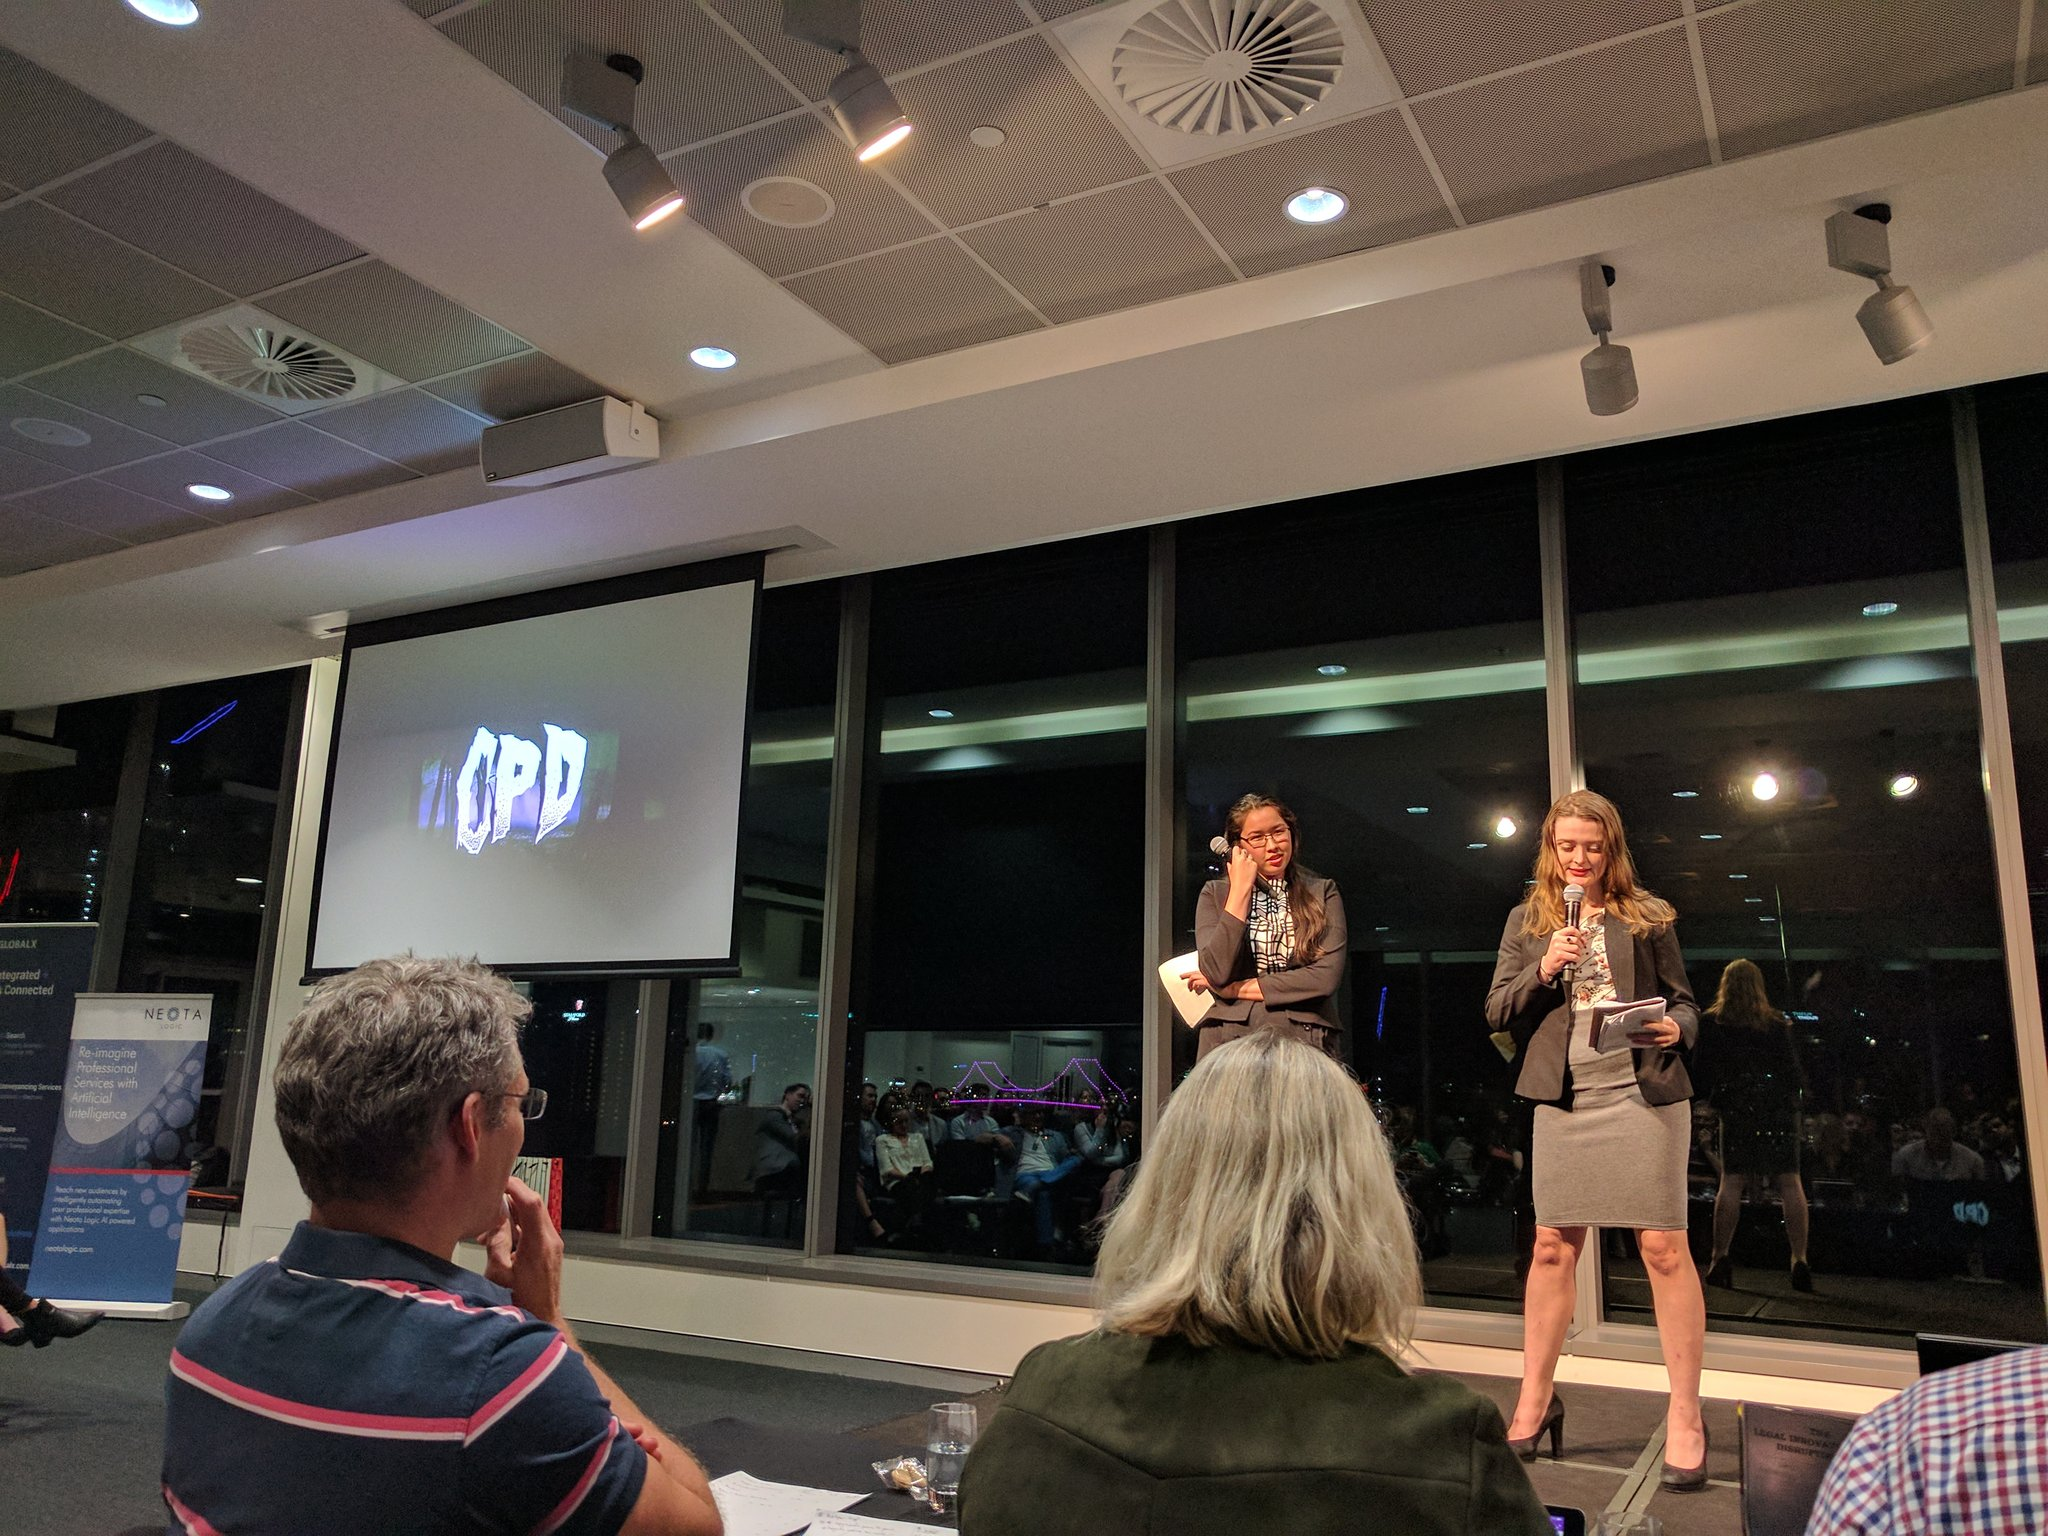 CPDexpress: subscription based personal/firm-based CPD #disruptinglaw @Legal_Forecast @QUTStarters @QUTfoundry @AllensLegal https://t.co/aLZPJ9zyJa